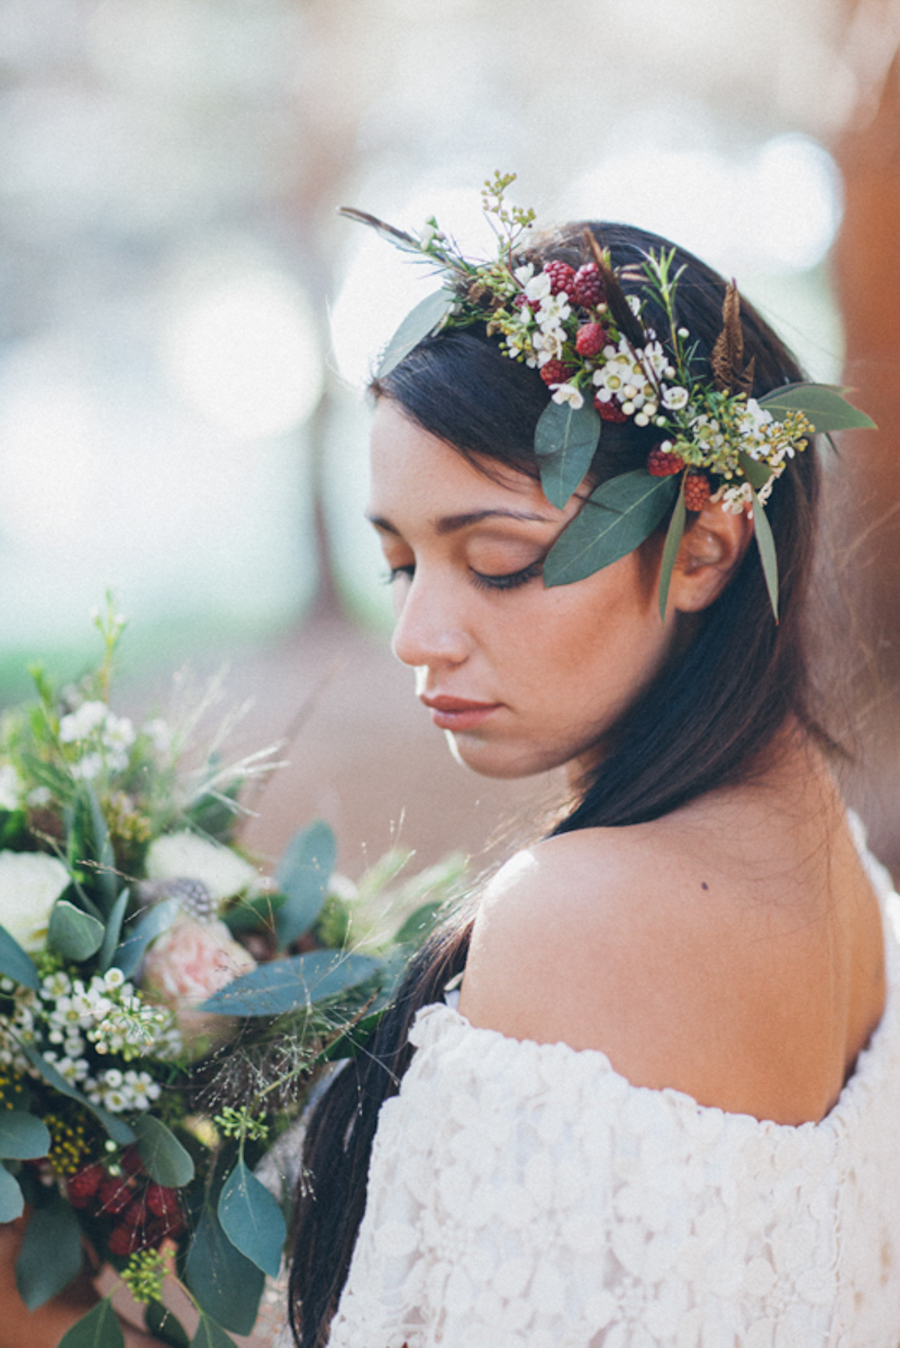 matrimonio-boho-chic-e-naturale-sweetphotofactory-wedding-wonderland-18